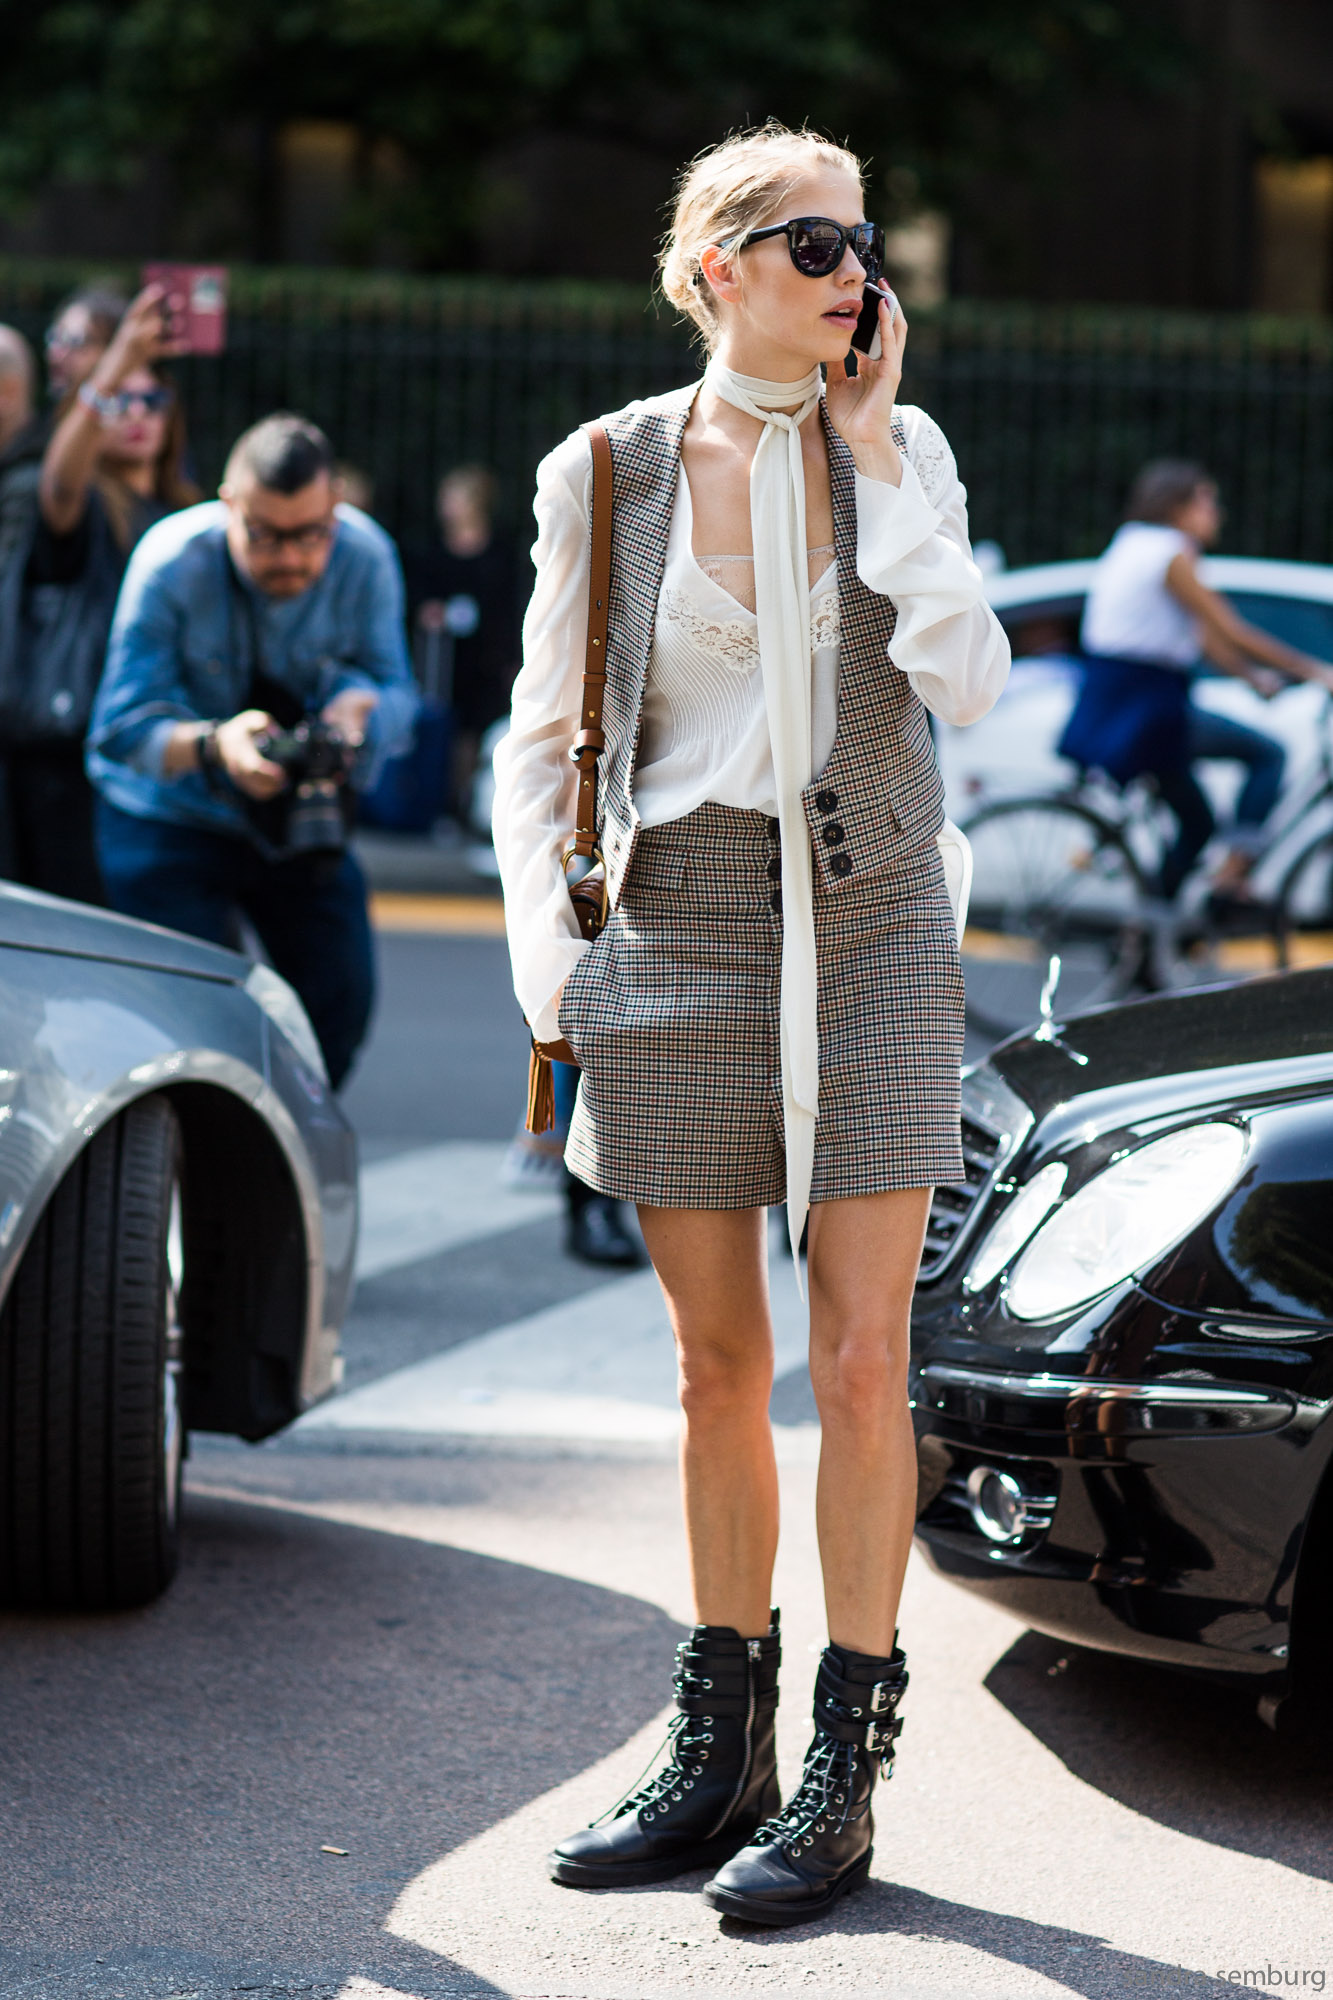 MilanFw_SS2016_day4_sandrasemburg-20150926-6504